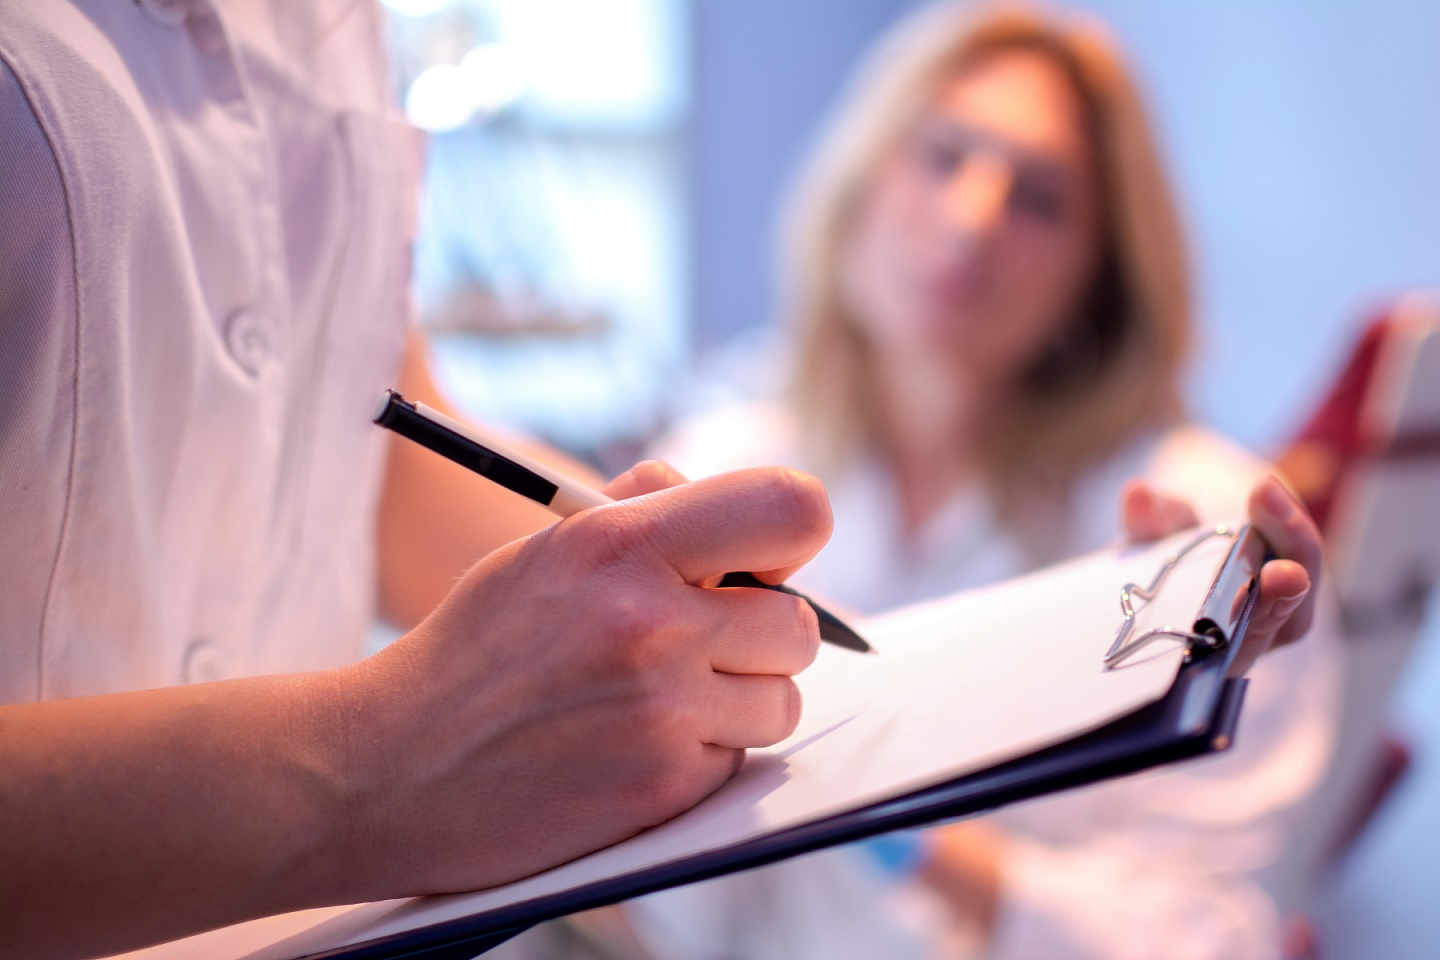 doctor writing on chart as patient looks on